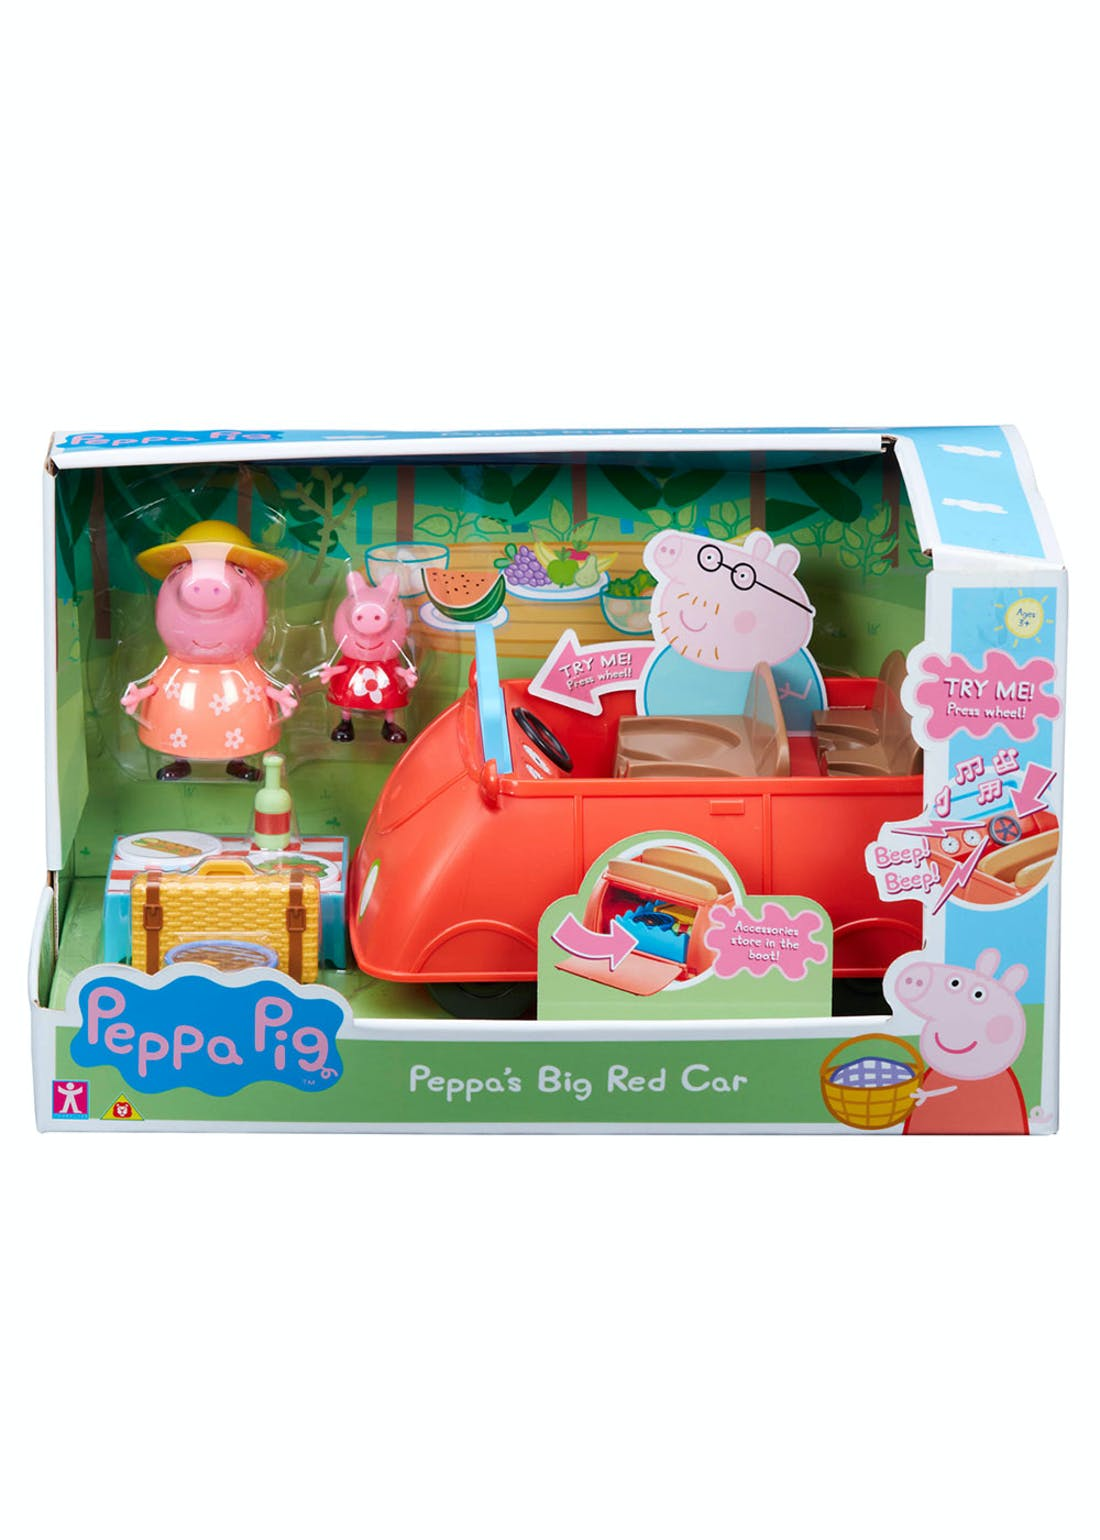 Peppa Pig Big Red Car (32.5cm x 1.58cm x 18cm)